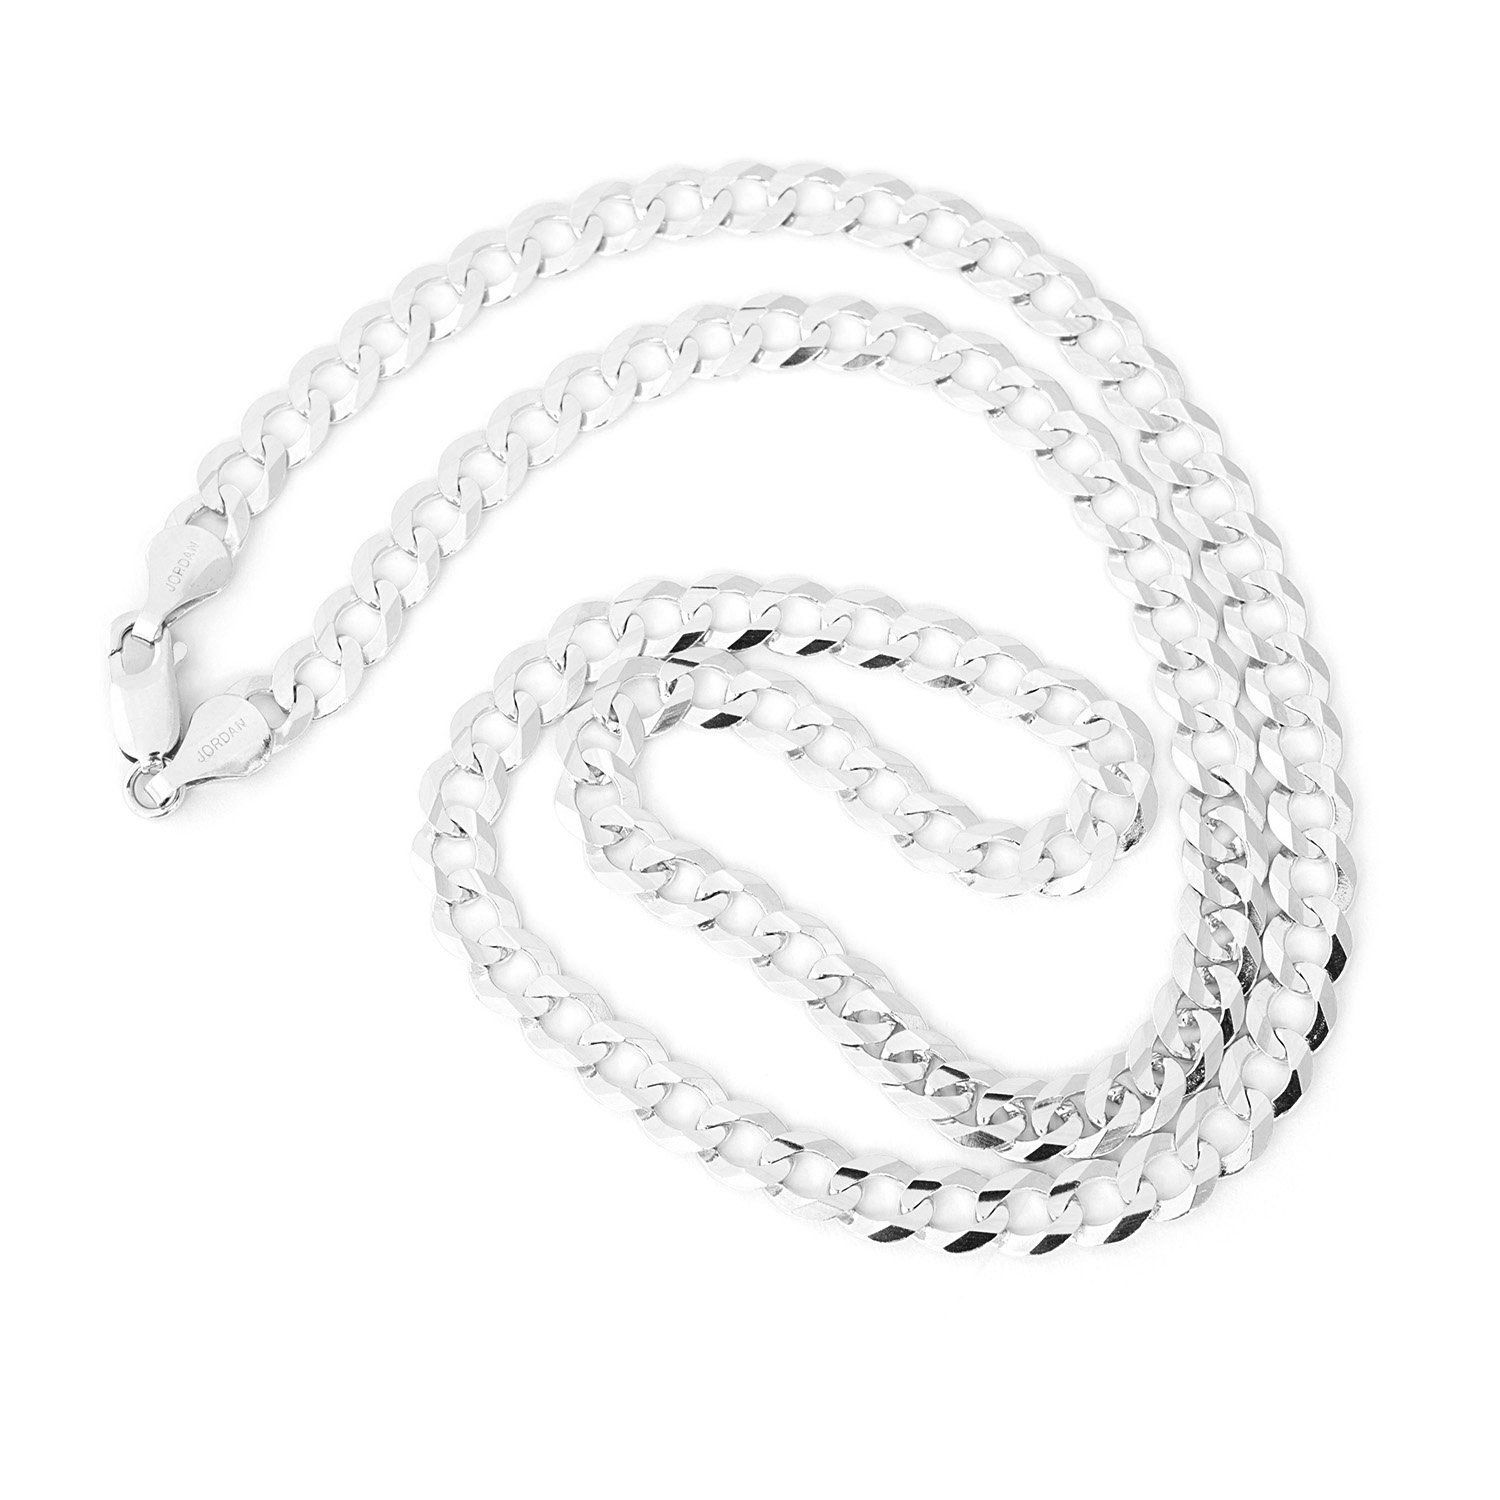 Solid 14k White Gold fort Cuban Curb 5 7mm Mens Chain Necklace